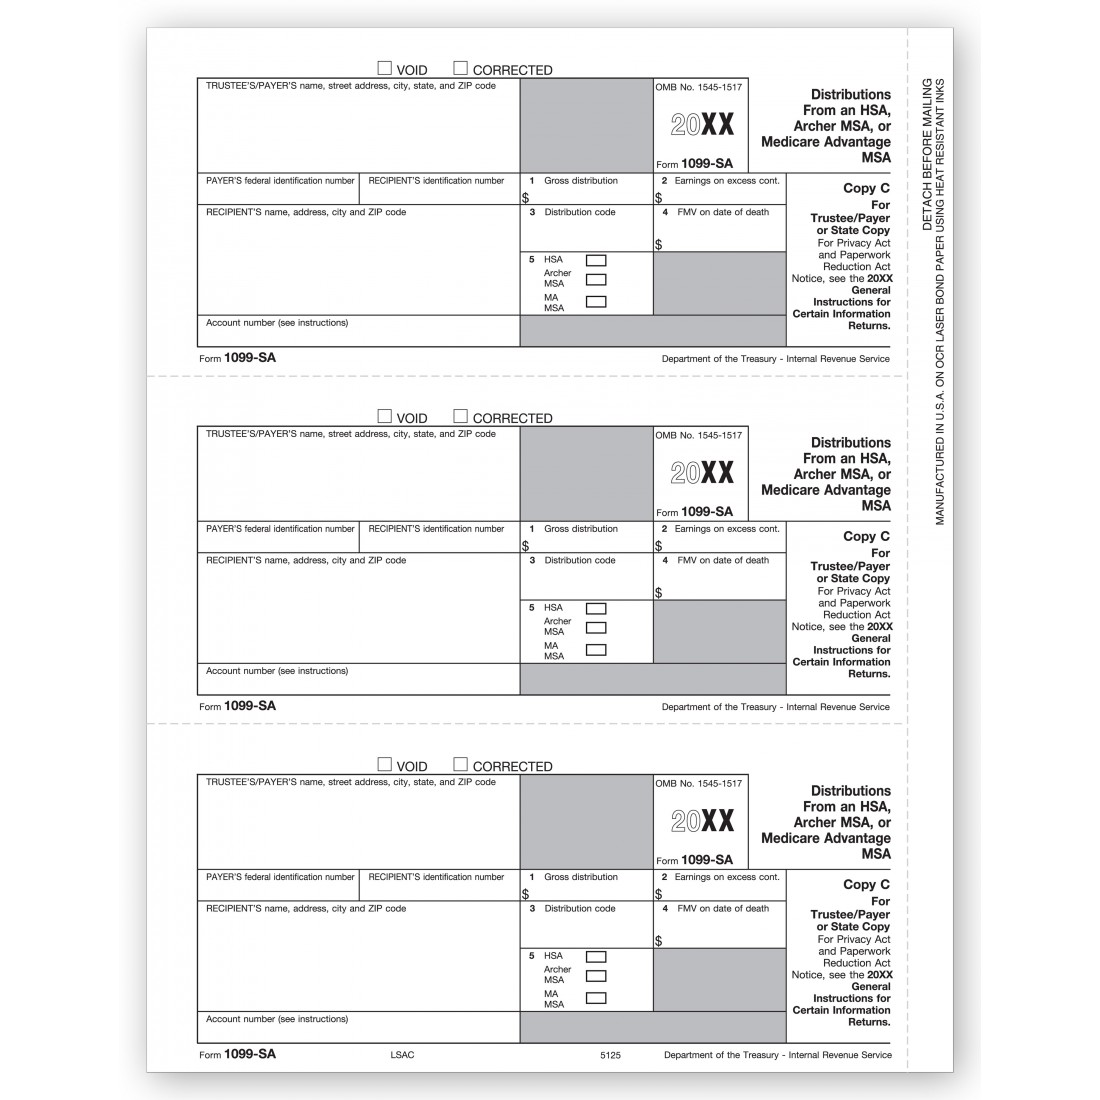 Form 8938 stock options irs form 8938 stock options falaconquin